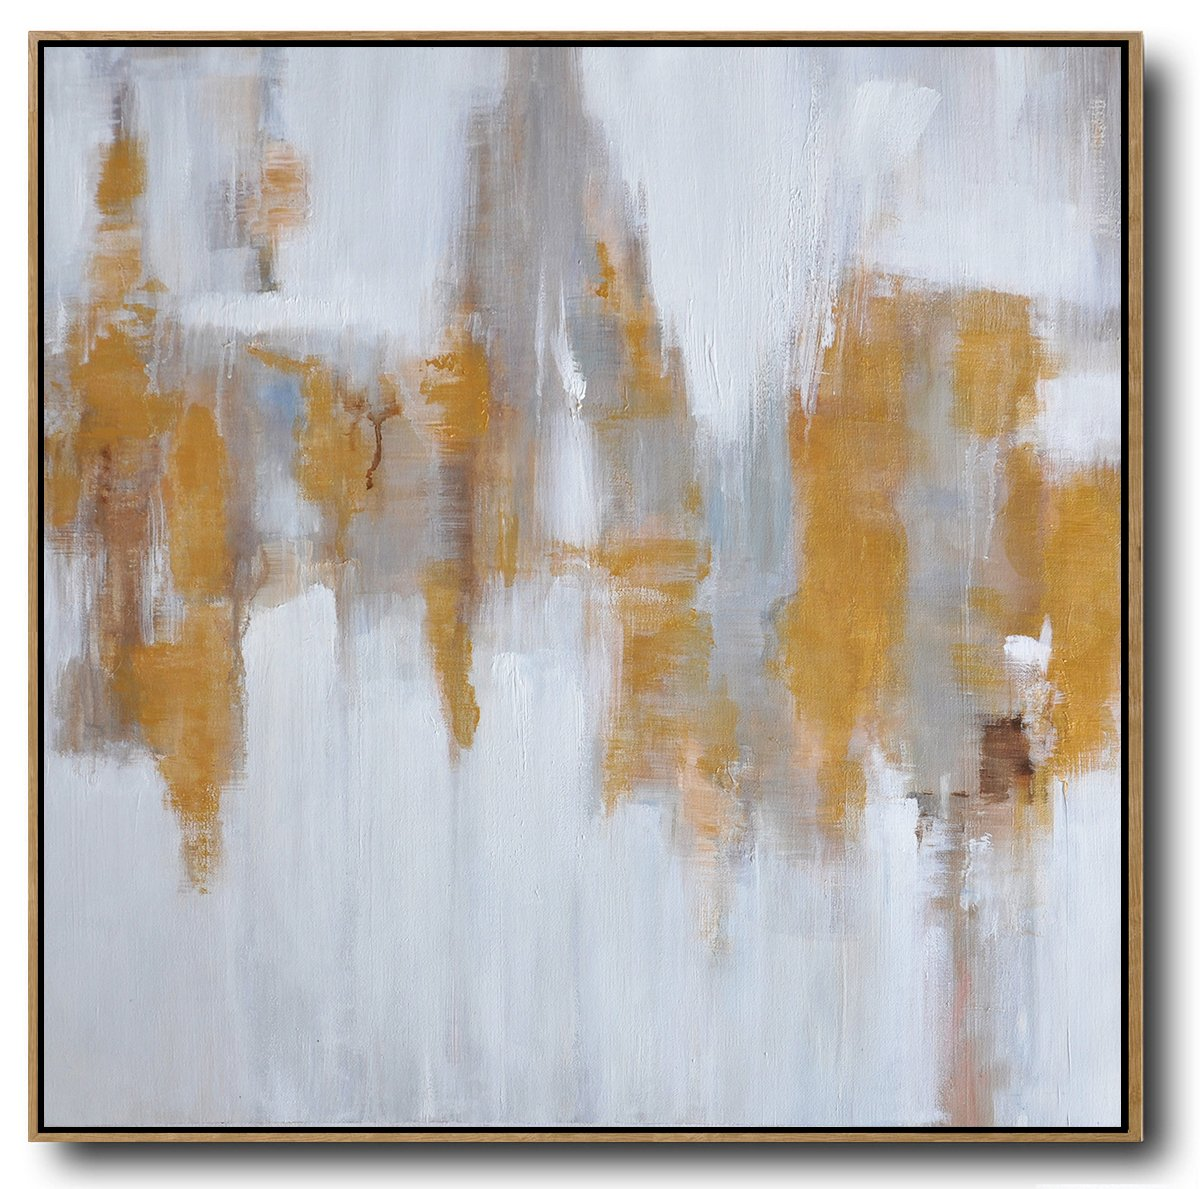 Extra Large Painting,Large Abstract Landscape Oil Painting On Canvas,Hand Painted Acrylic Painting,White,Grey,Yellow.etc